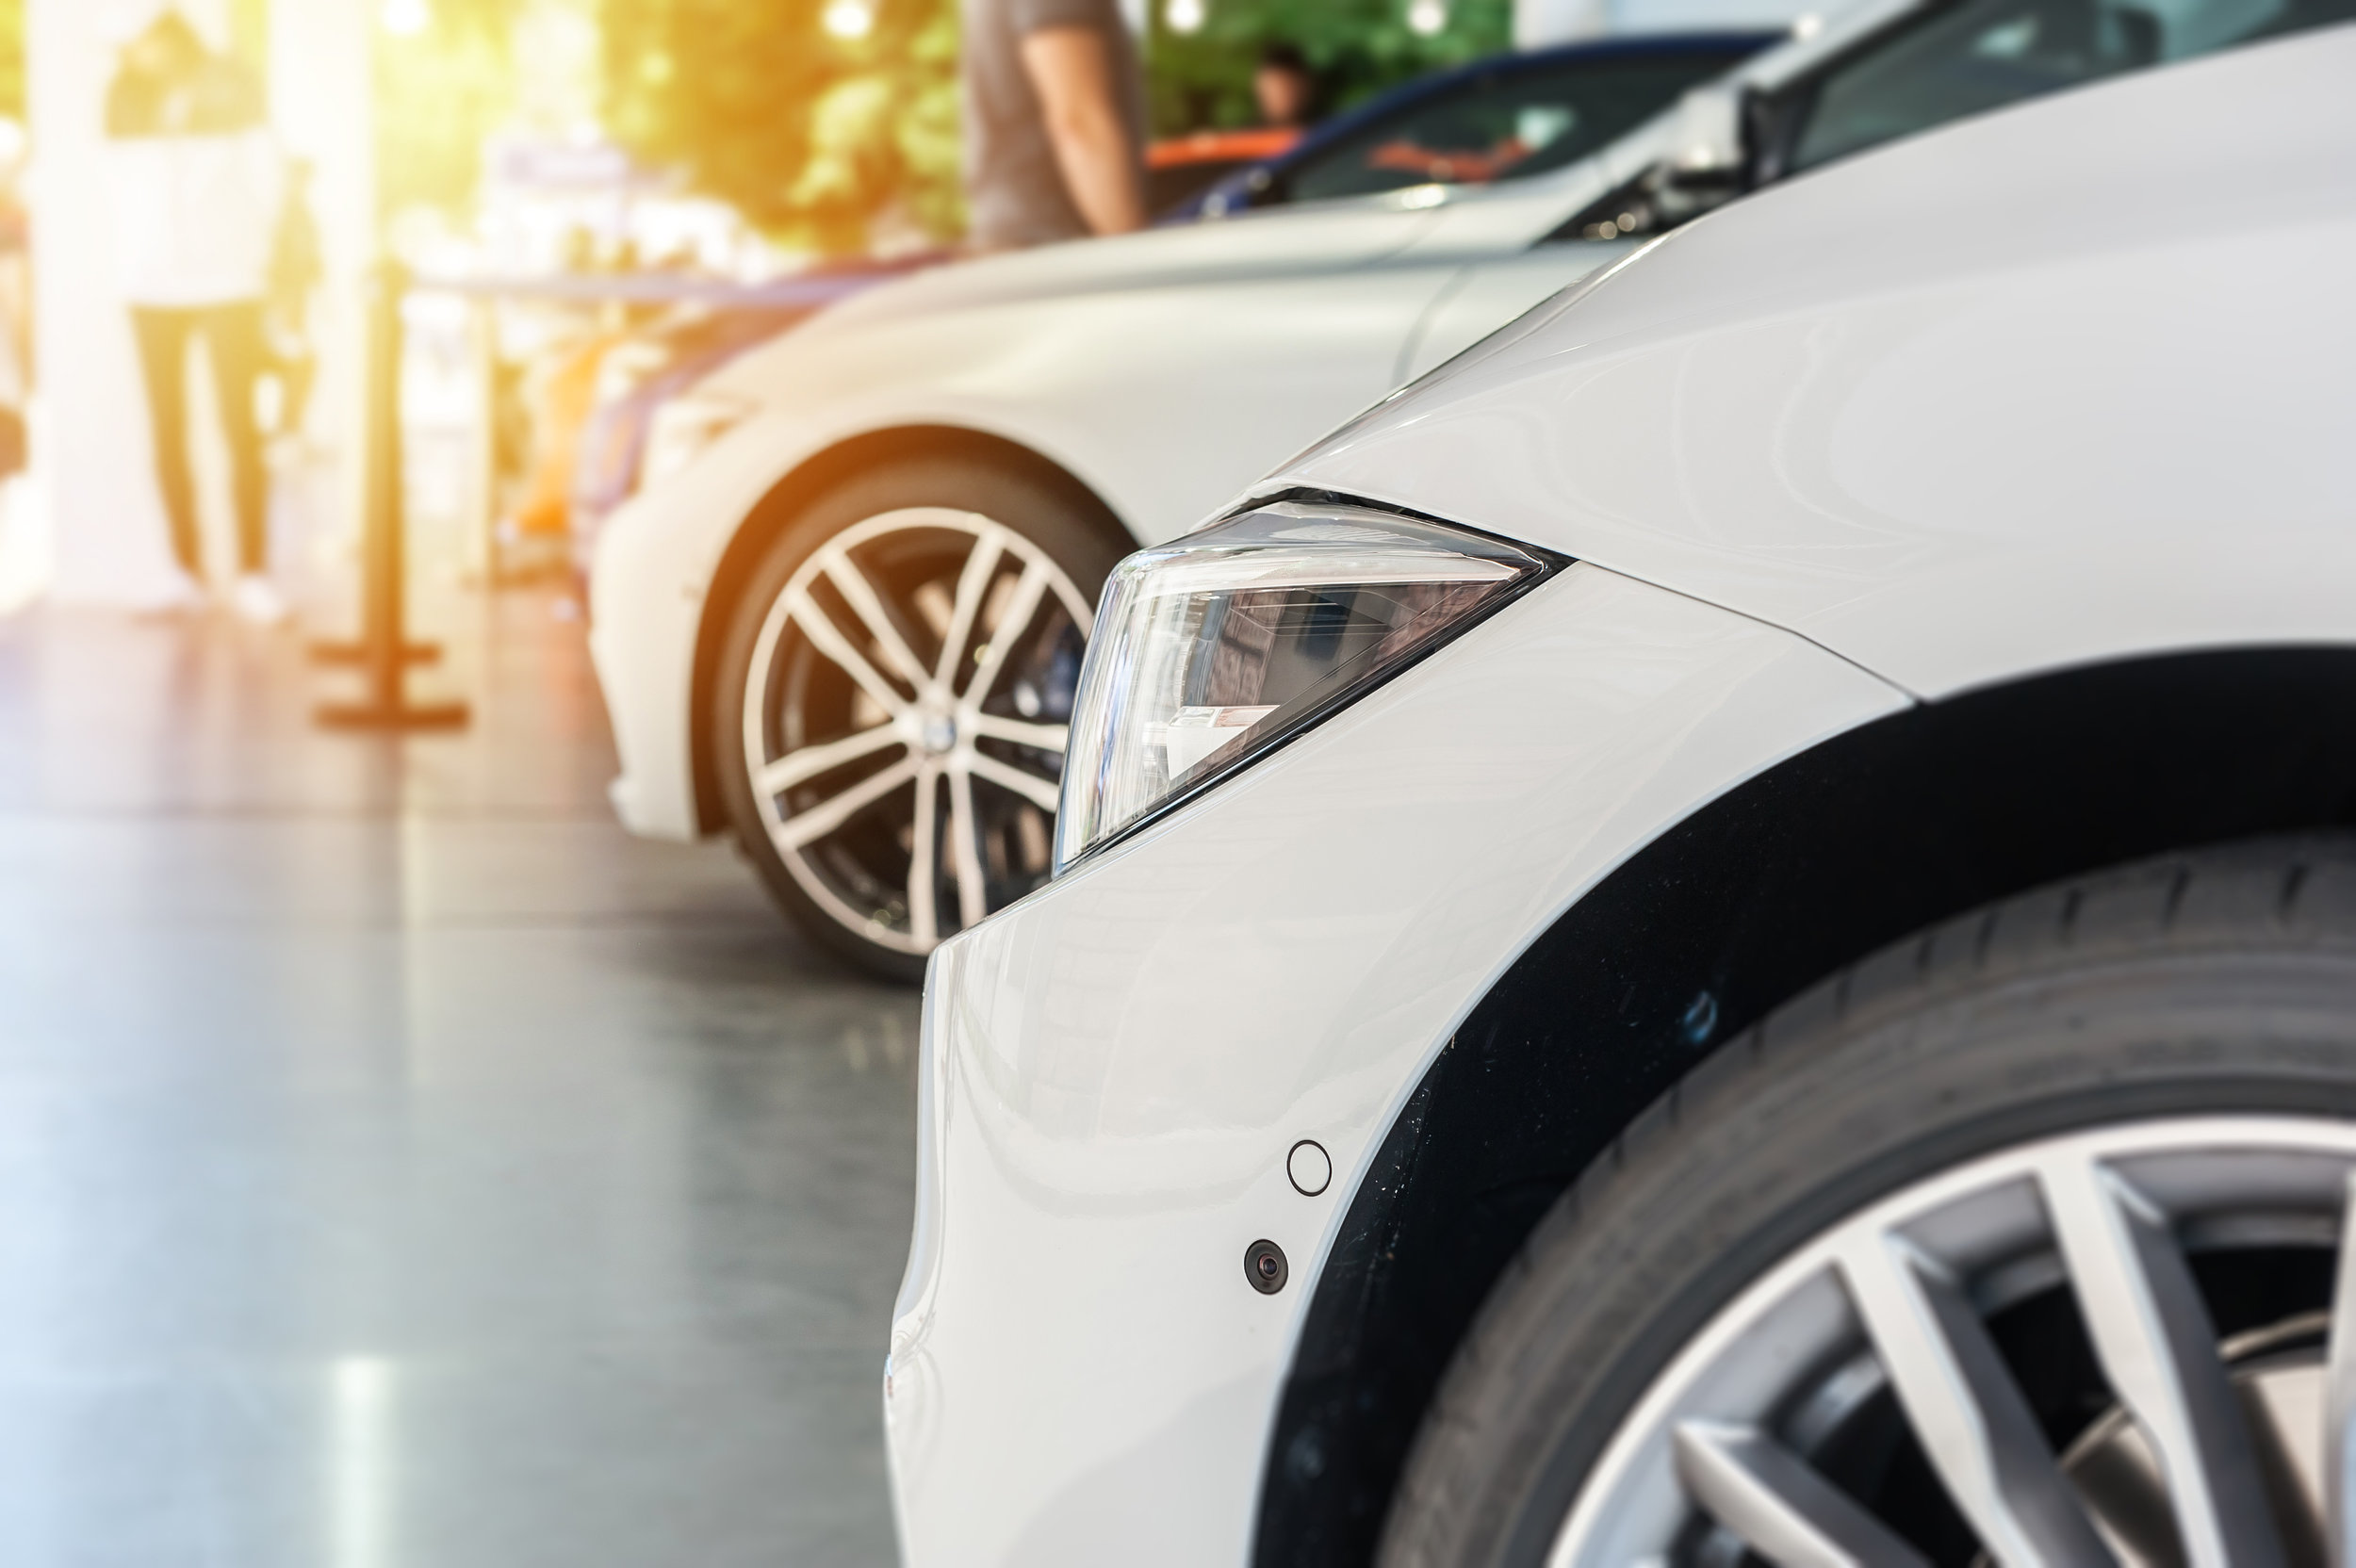 AUTOMOTIVE & SHOWROOMS - THE FIRST IMPRESSION OF YOUR CAR IS THE ONE YOU GET FROM THE SHOWROOM. YOUR CUSTOMERS ARE CRAVING THE PERCEPTION OF NEWNESS AND LUXURY.AT SCENTWORKS ACHIEVING THE QUALITY OF THE